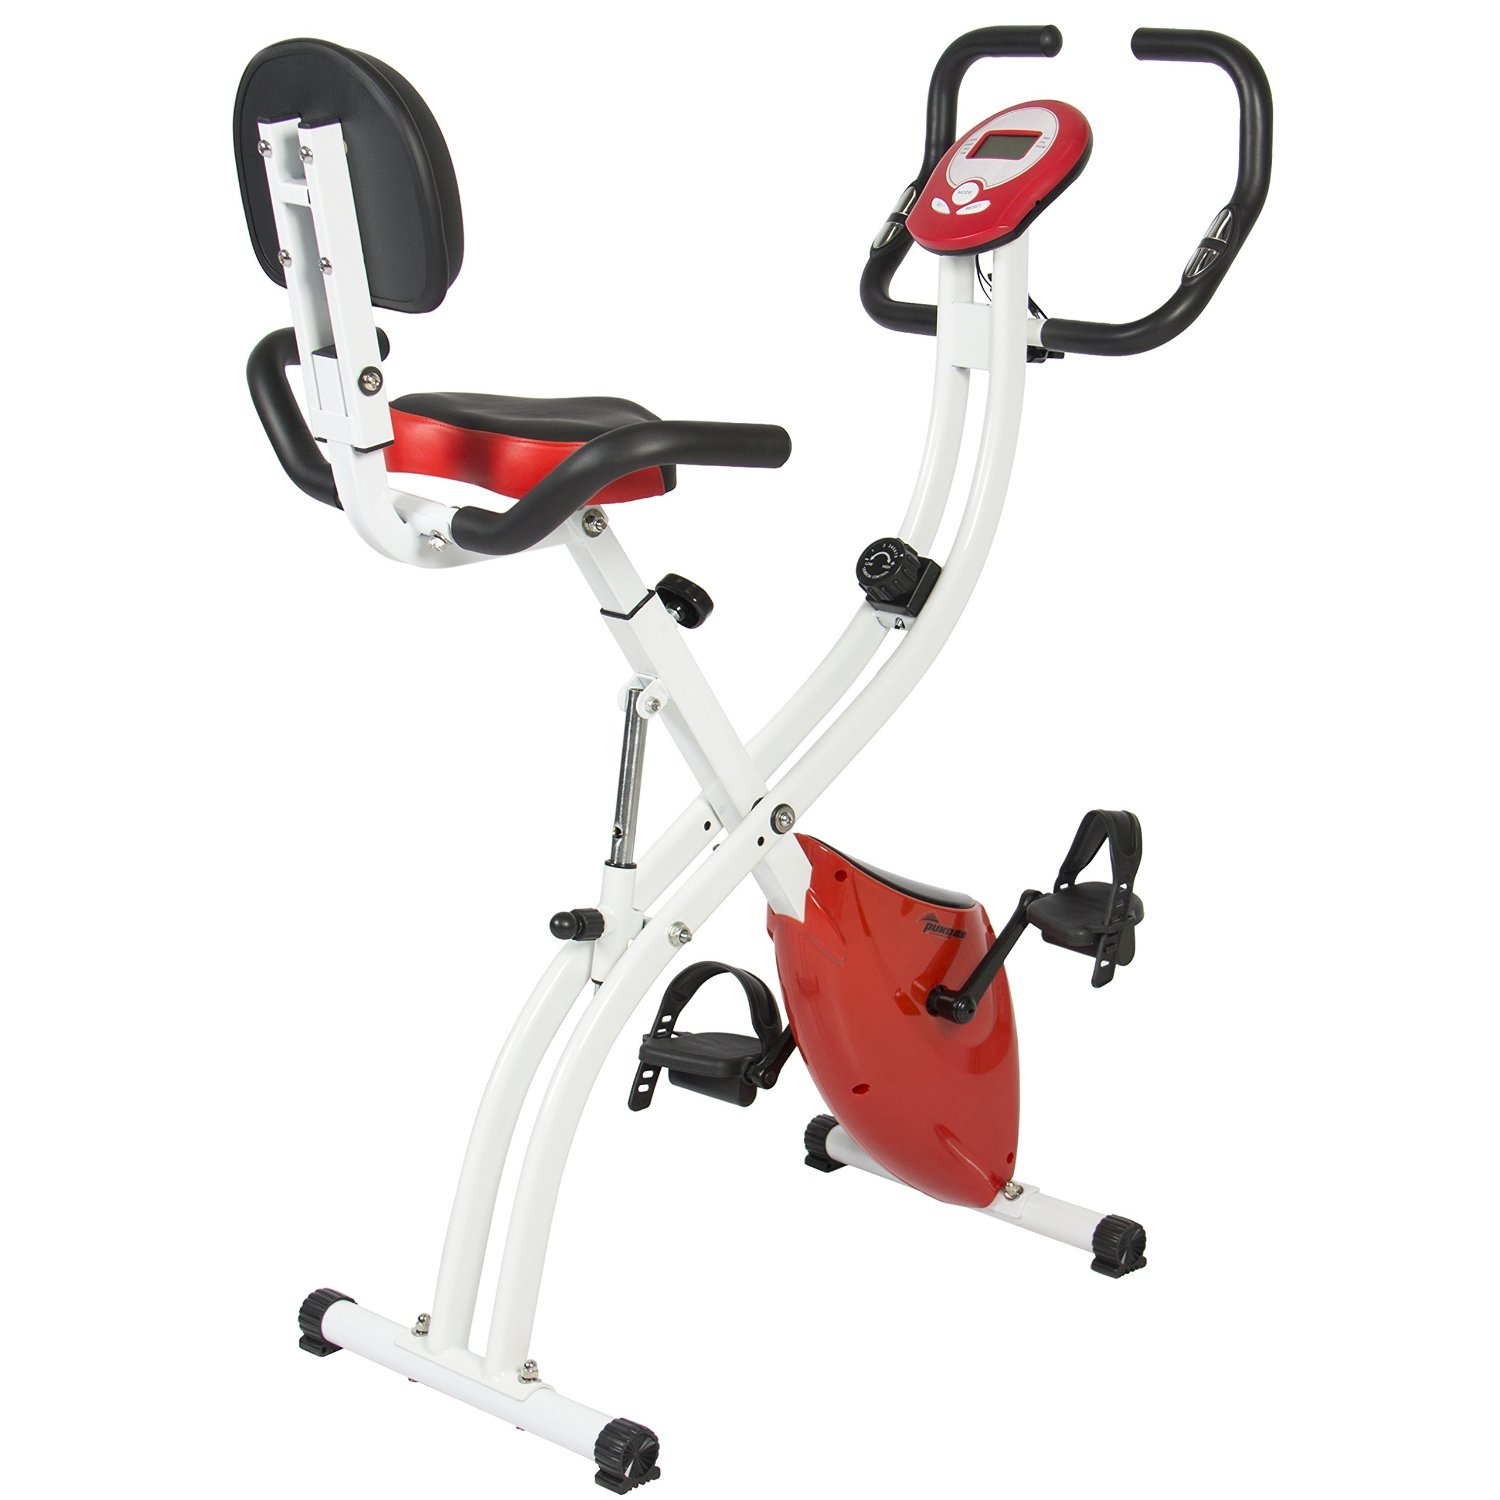 image showing the Best Choice Products Folding Adjustable Magnetic Upright Exercise Bike Fitness Upgraded Machine